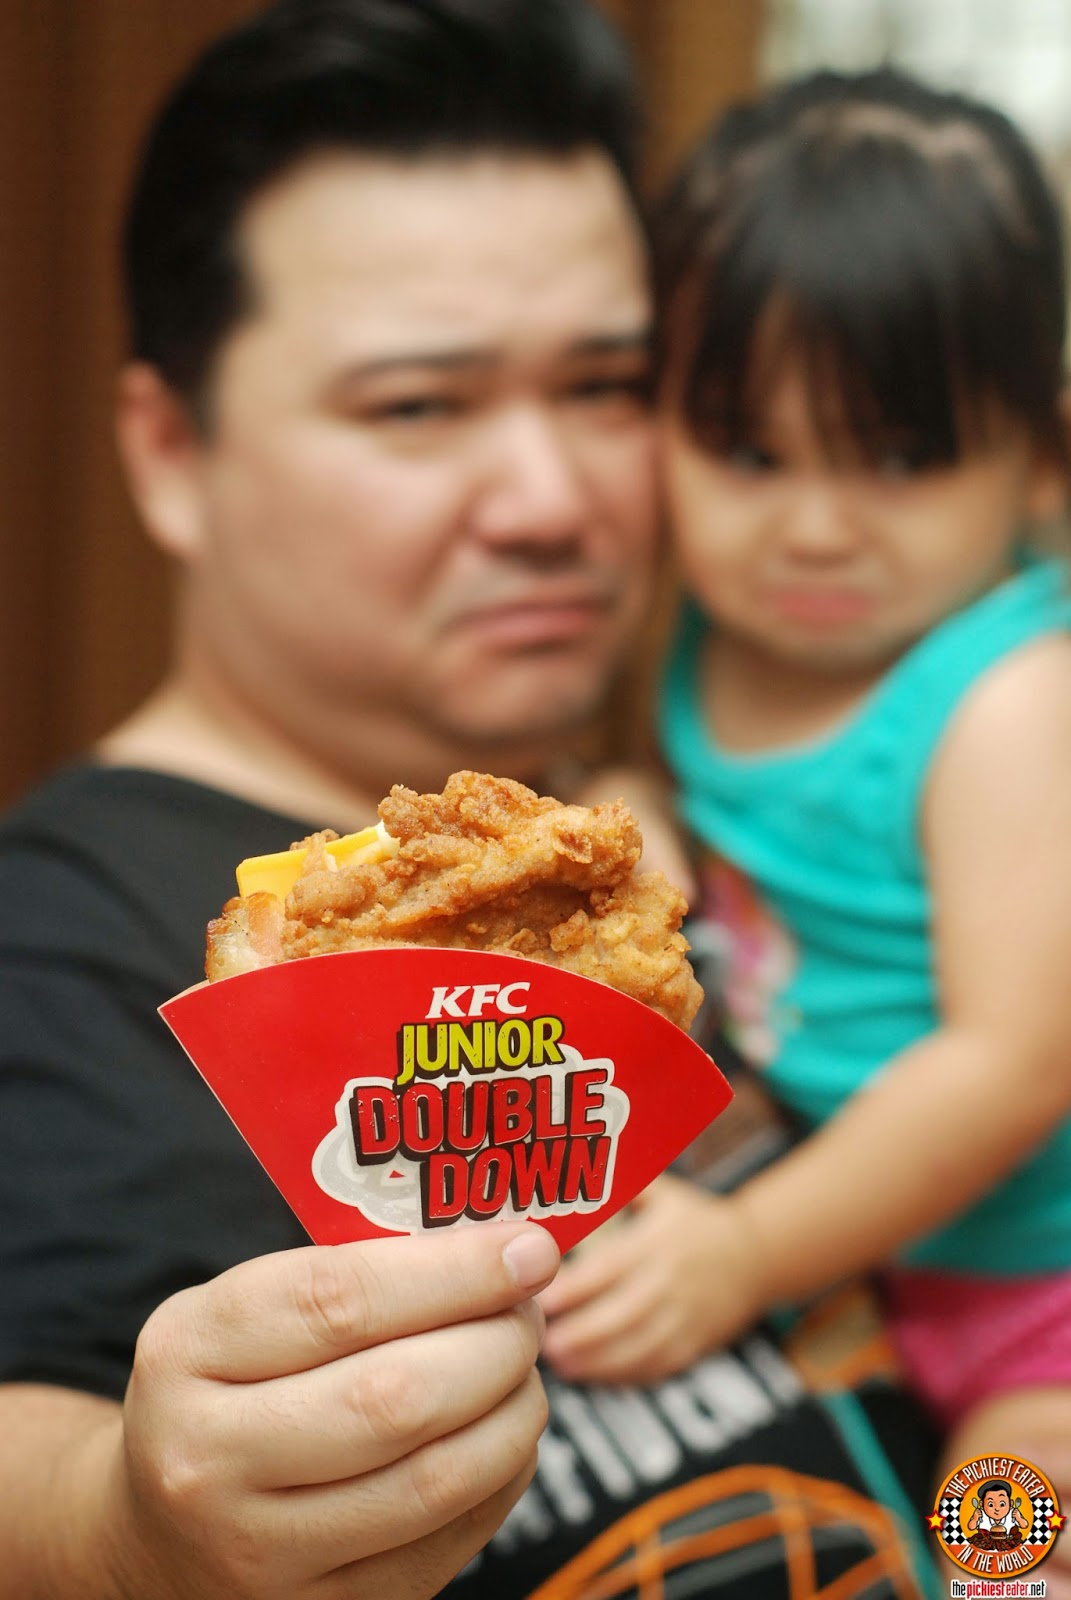 The Pickiest Eater In The World Farewell To Kfcs Double Down